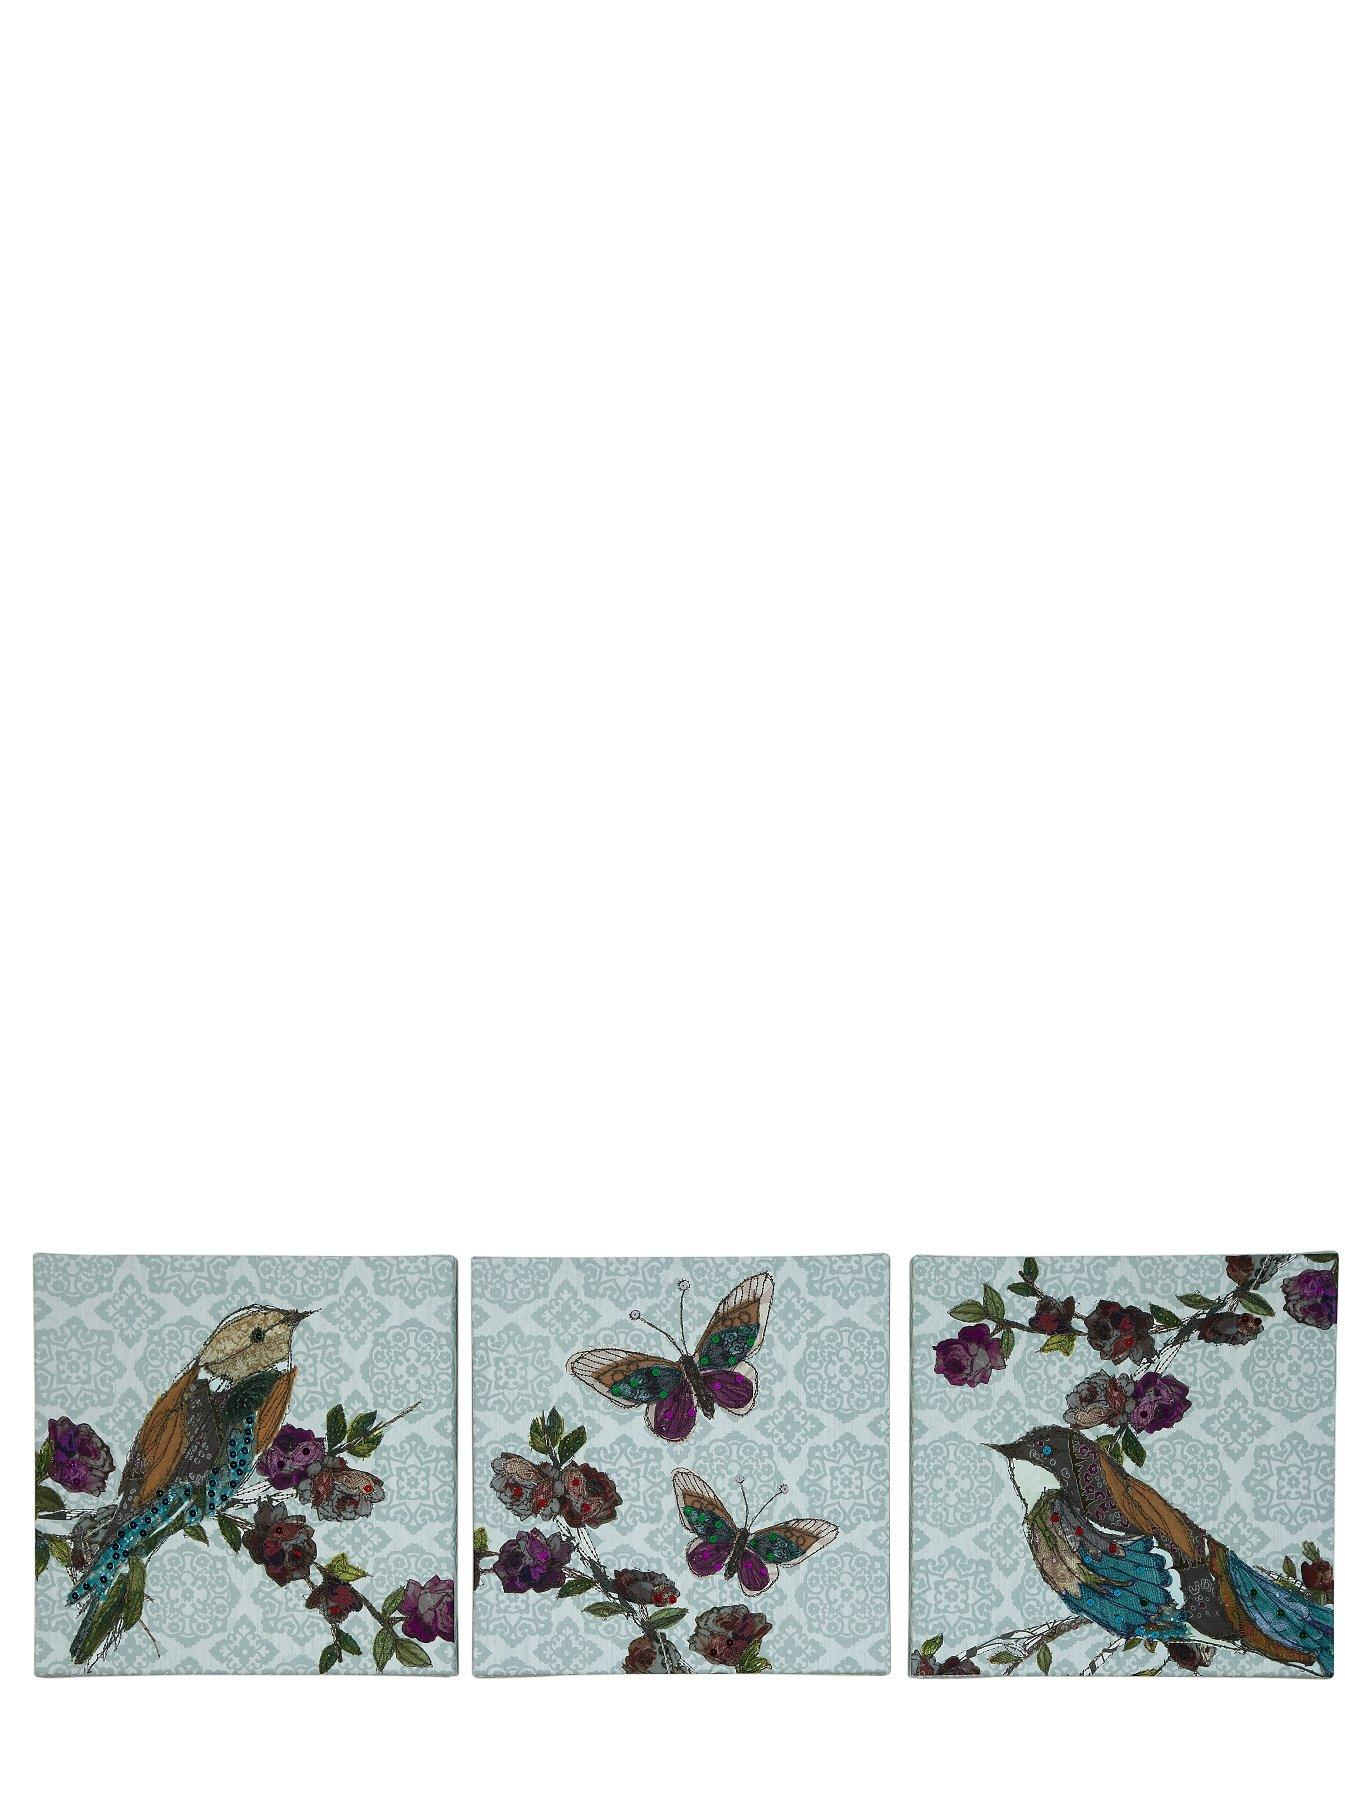 Set of 3 Monsoon Embellished Bird Canvases